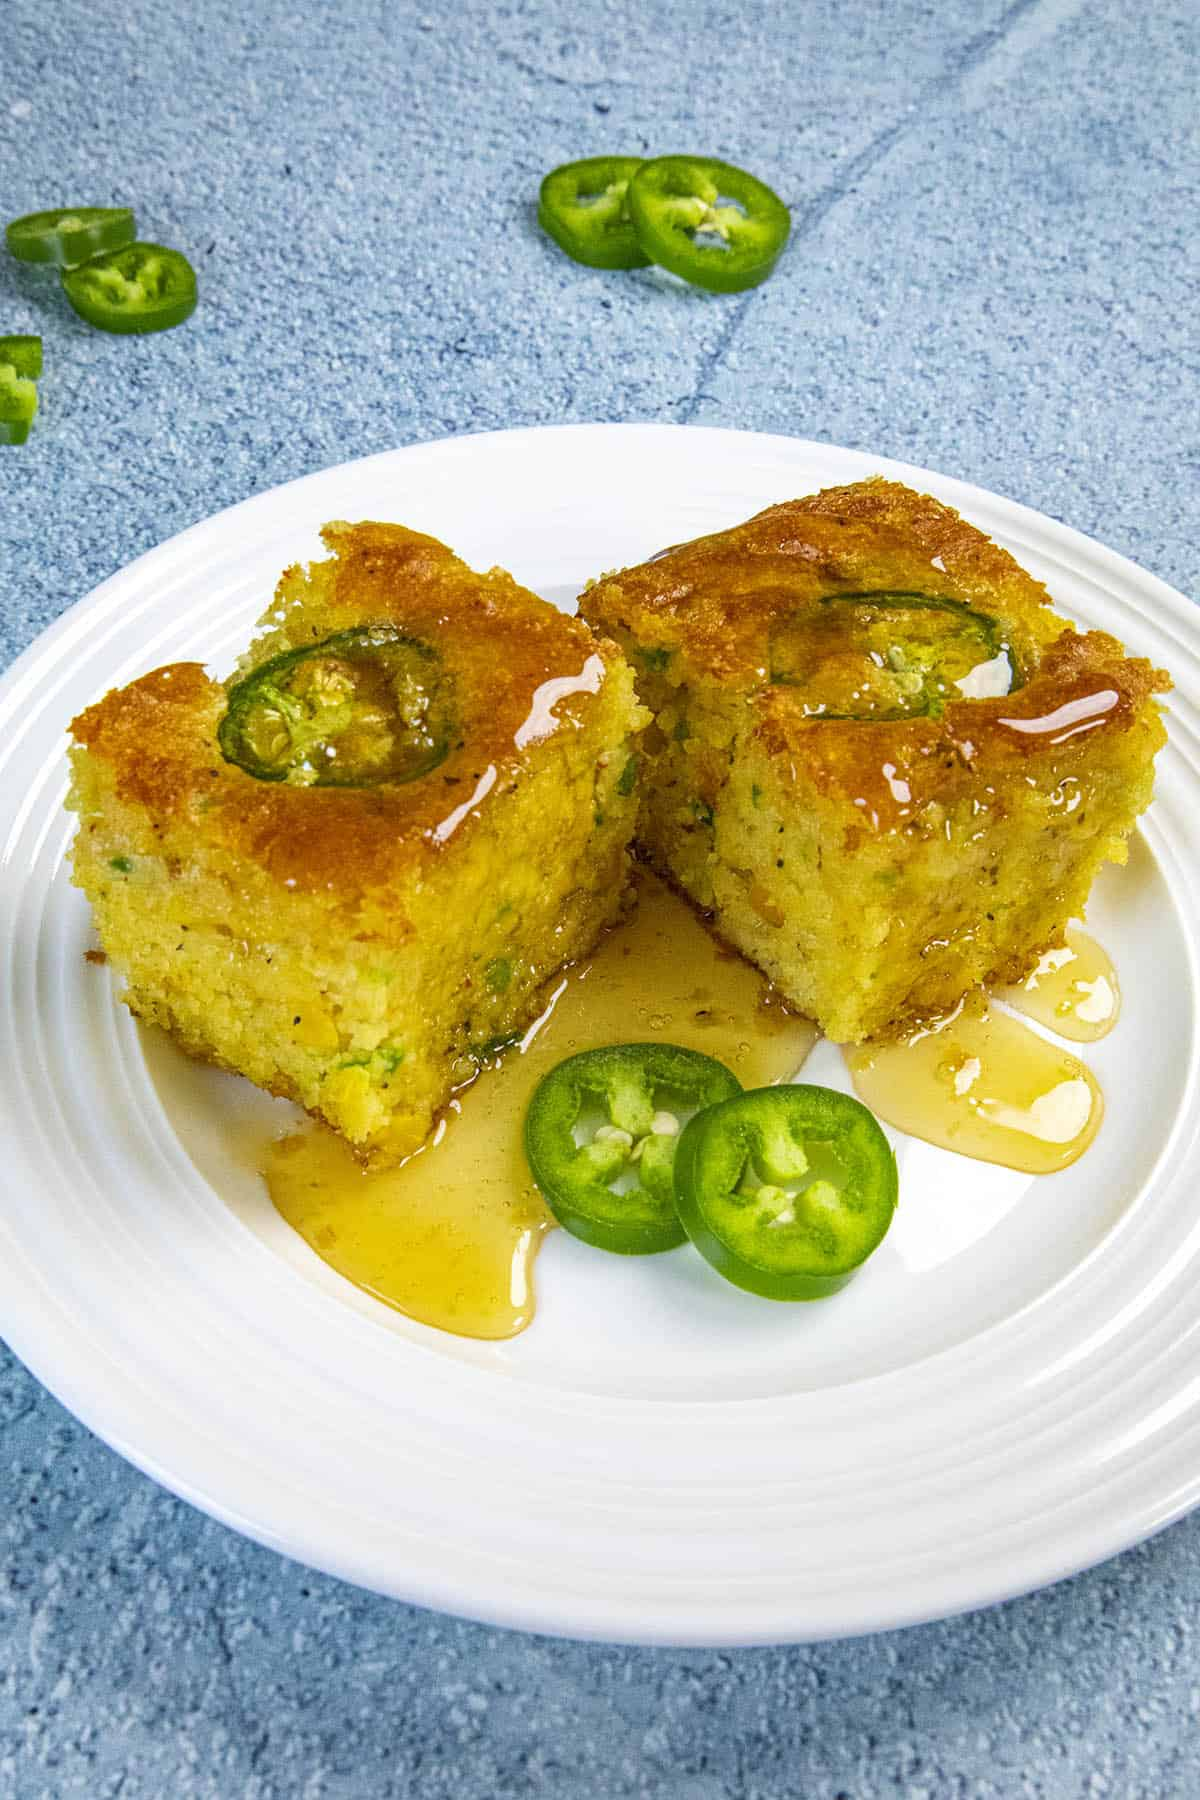 Two slices of Jalapeno Cornbread dripping with honey